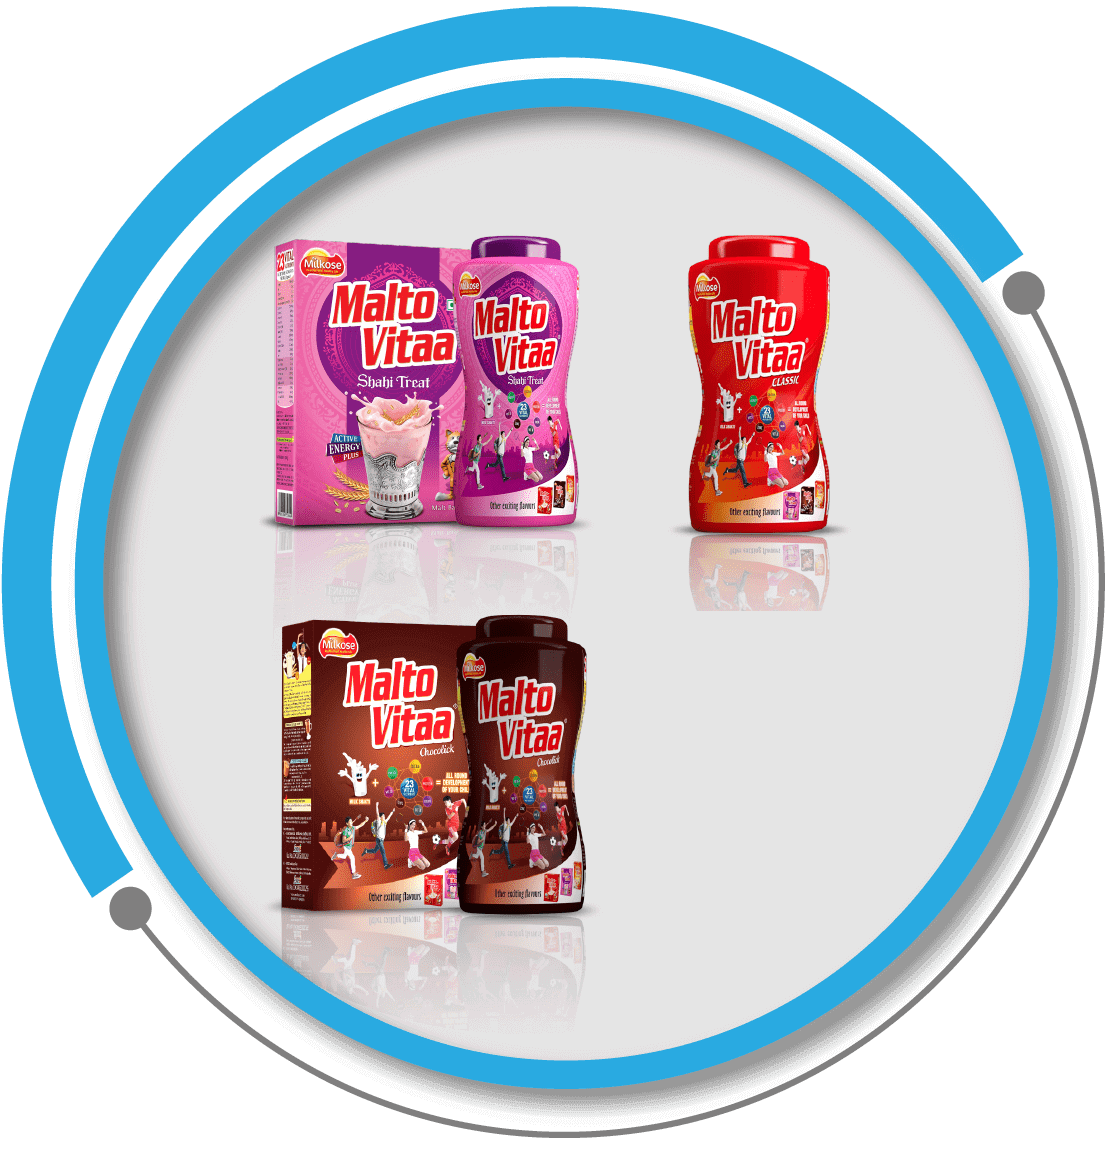 Malted Milk Foods, Extruded Cereal Products, Instant Noodles & Dairy Products Manufacturer